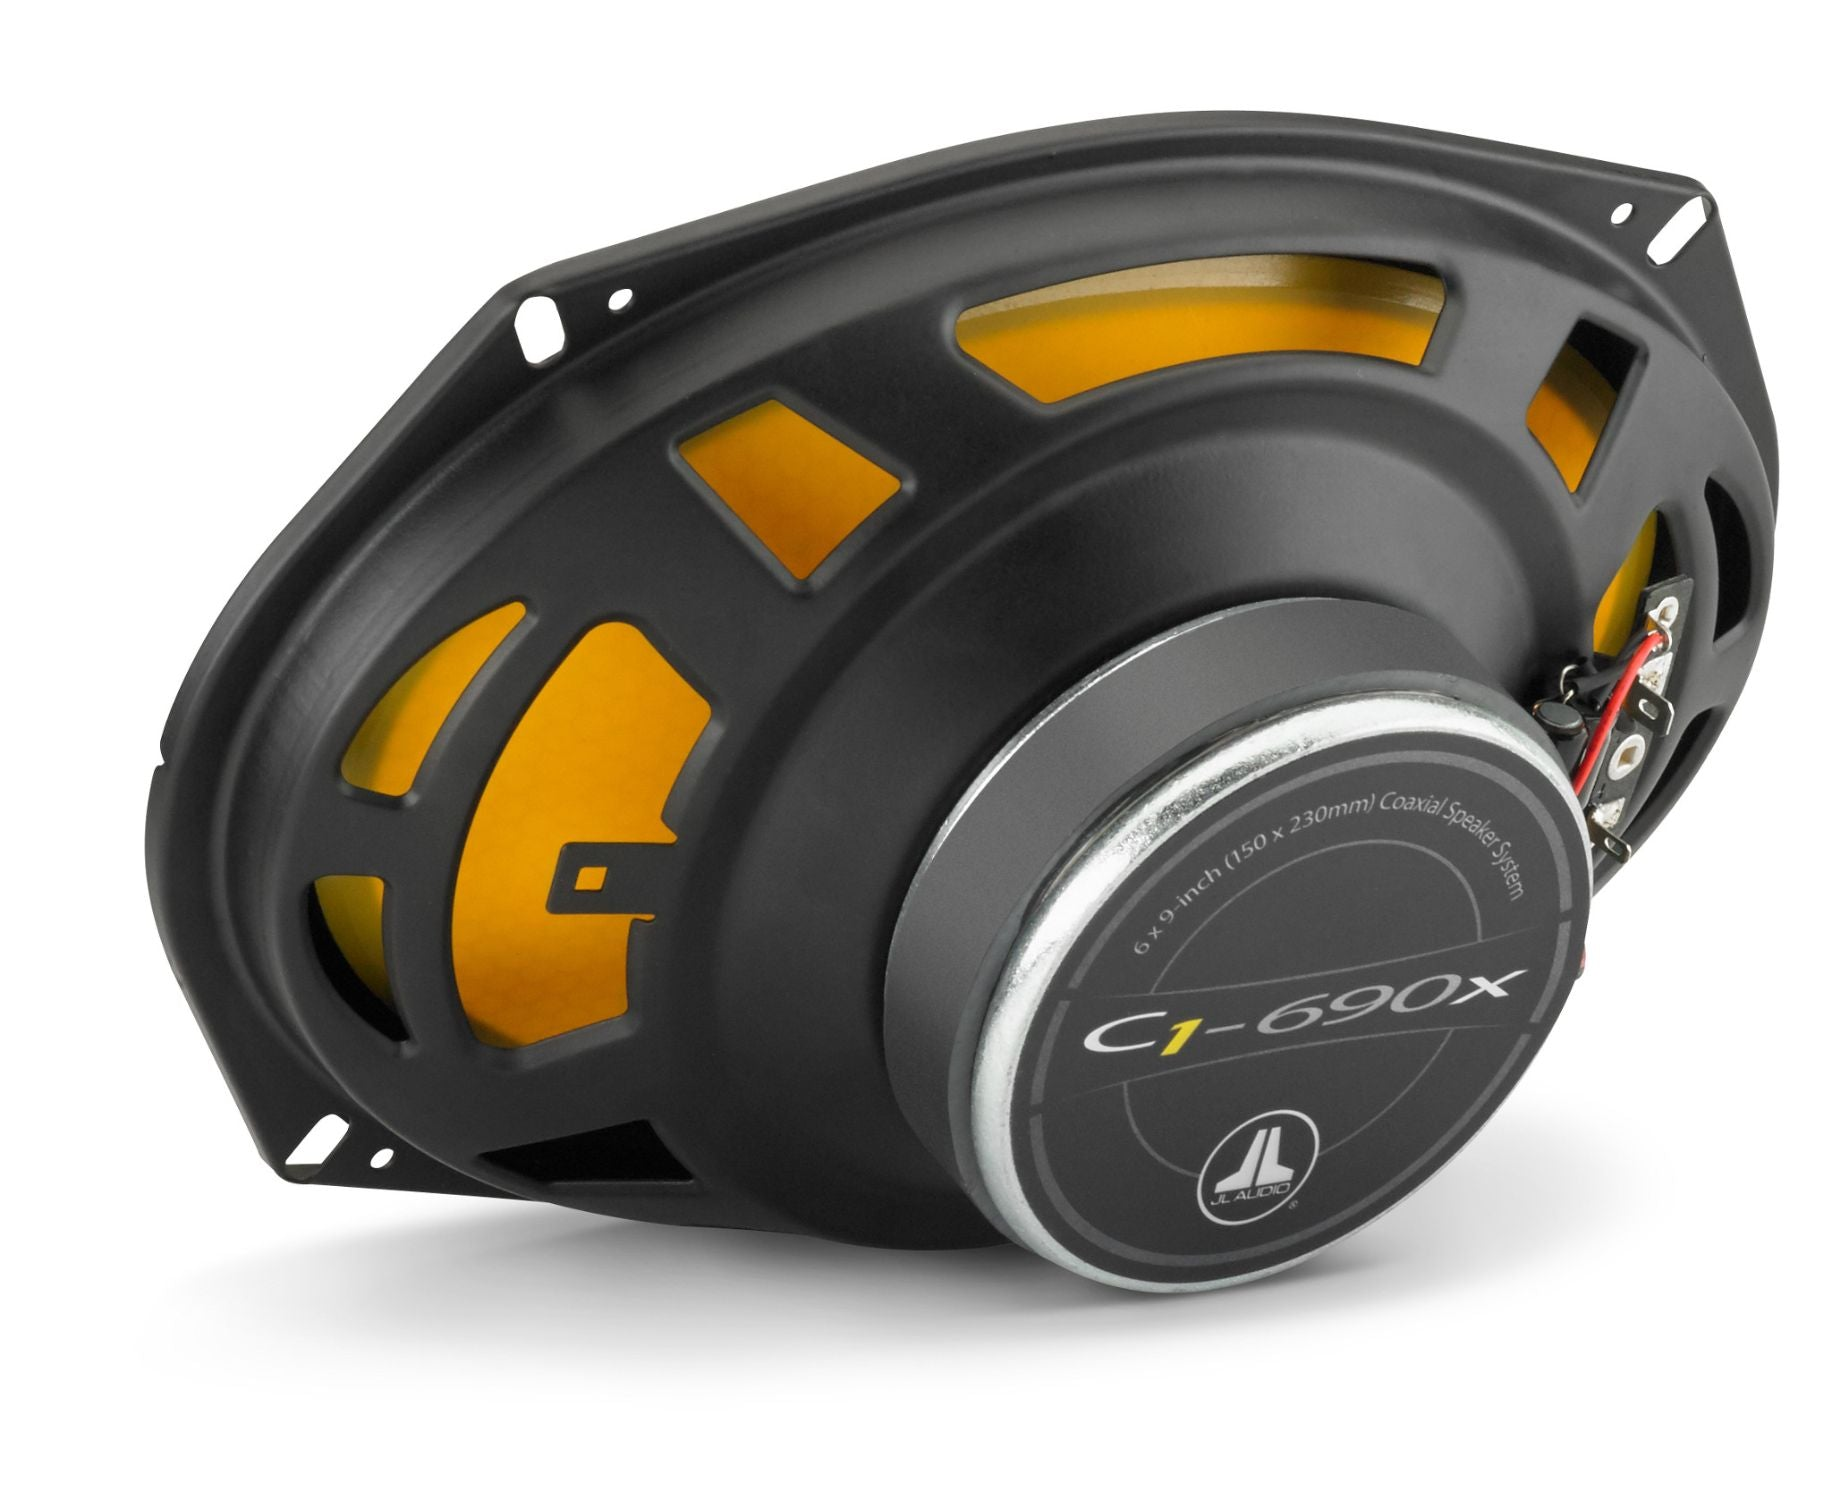 Rear of C1-690x Coaxial Speaker Facing Right